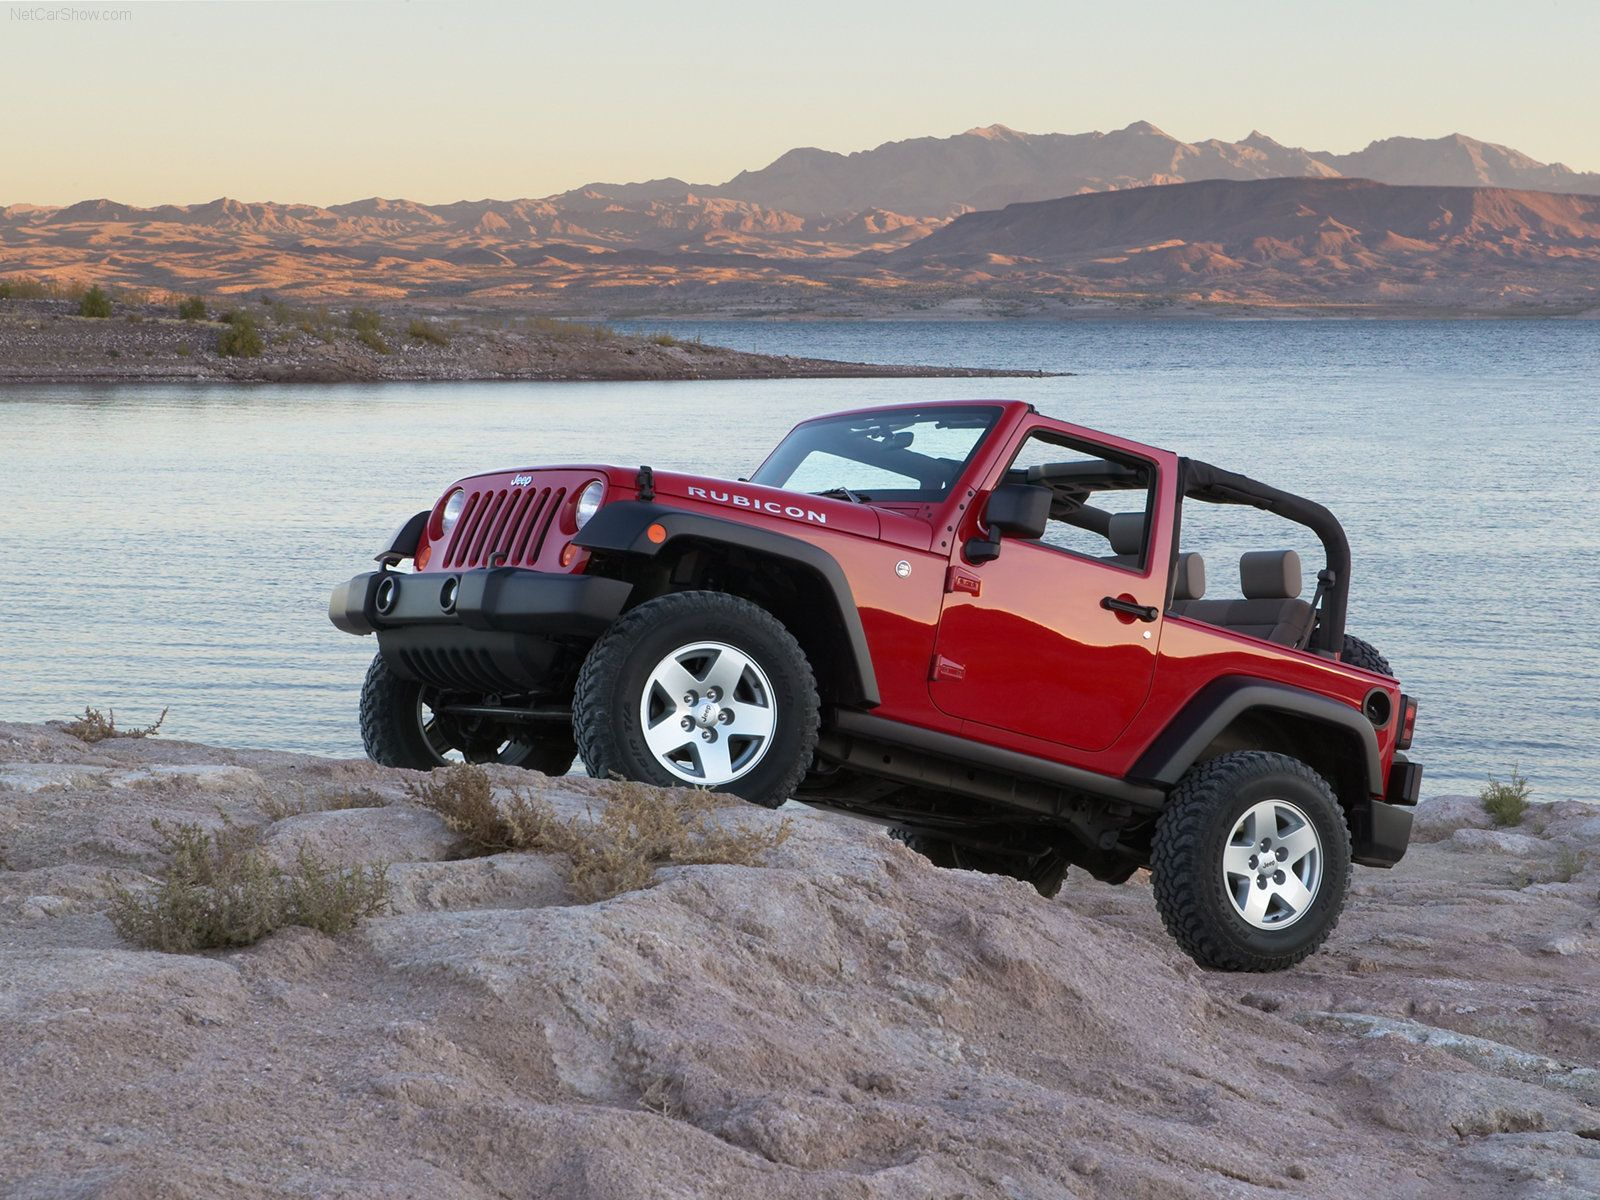 Rent A Jeep Wrangler Jeep Rubicon Red Jeep Wrangler Jeep